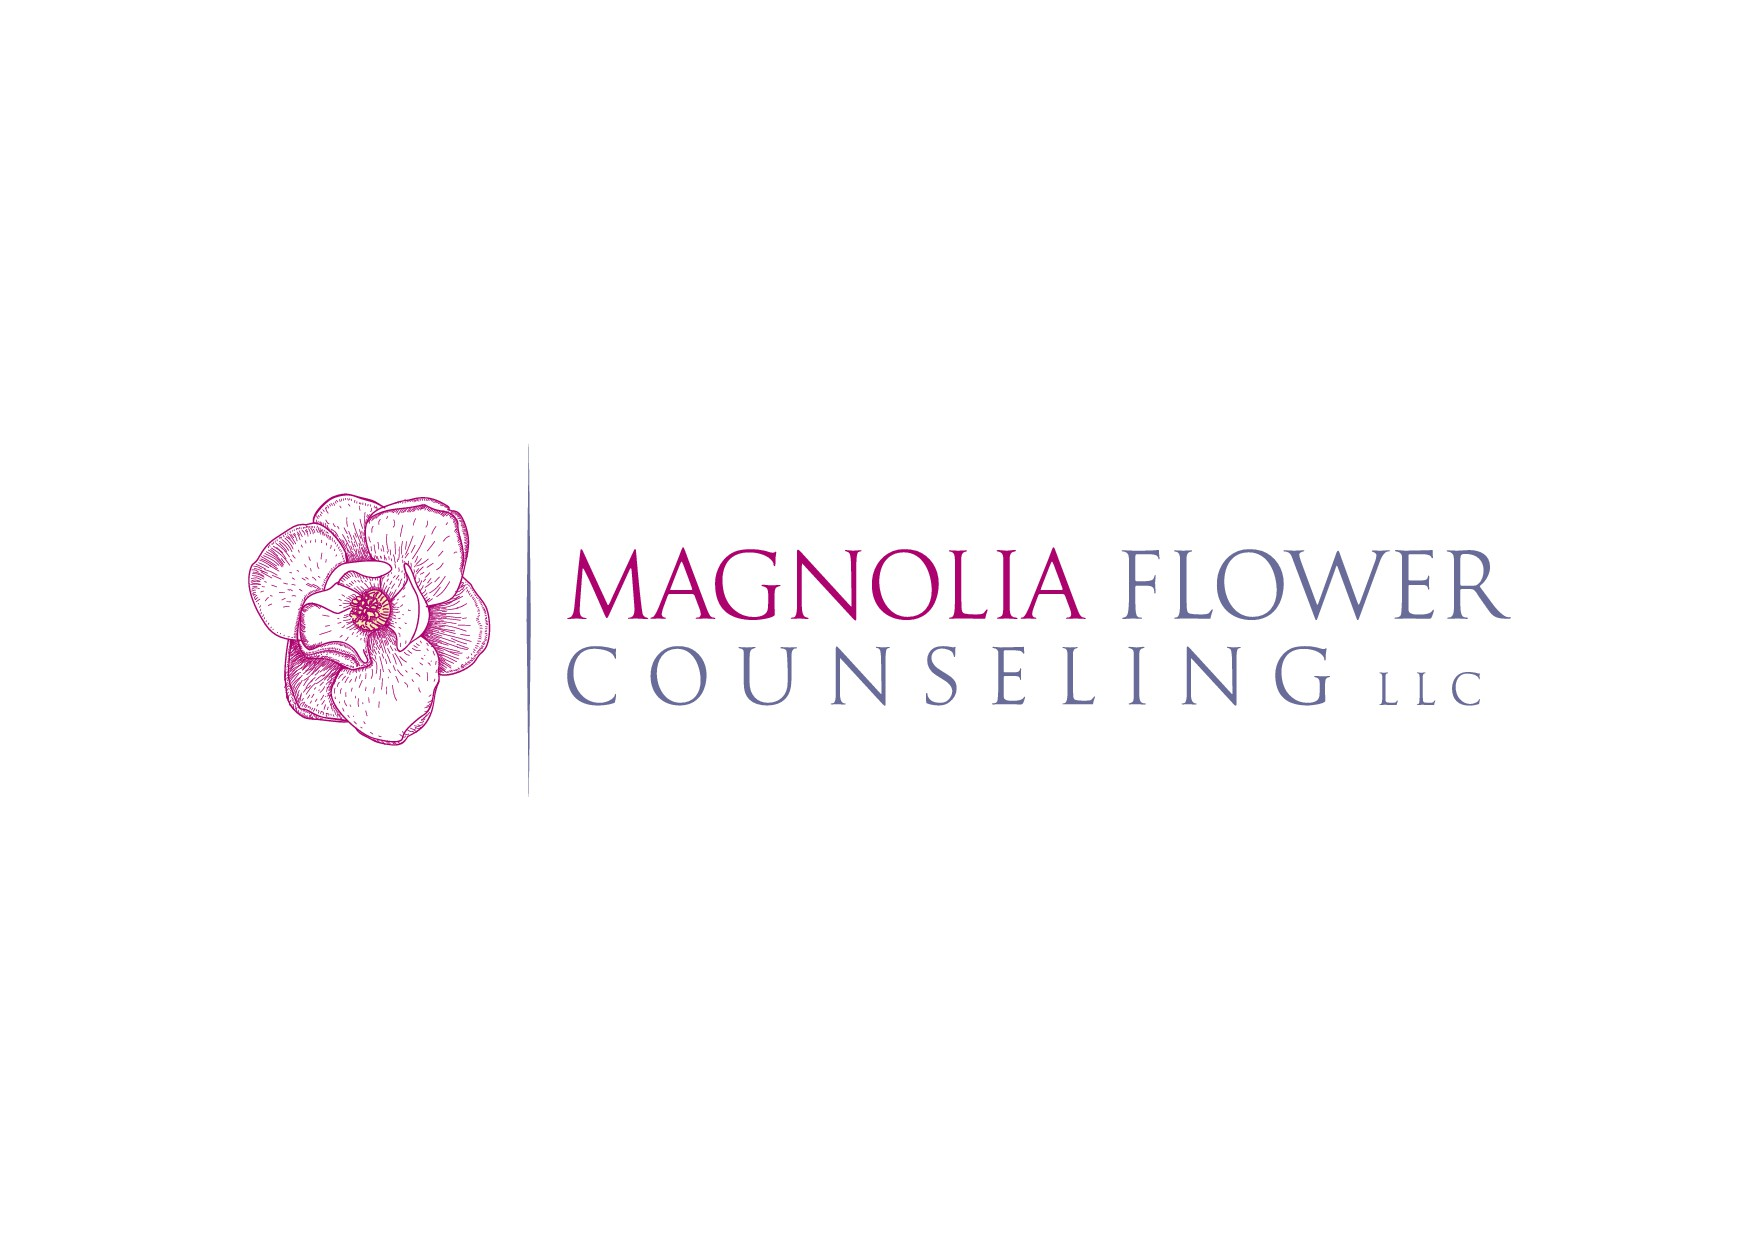 Magnolia Flower Counseling needs a warm, calming and inviting logo